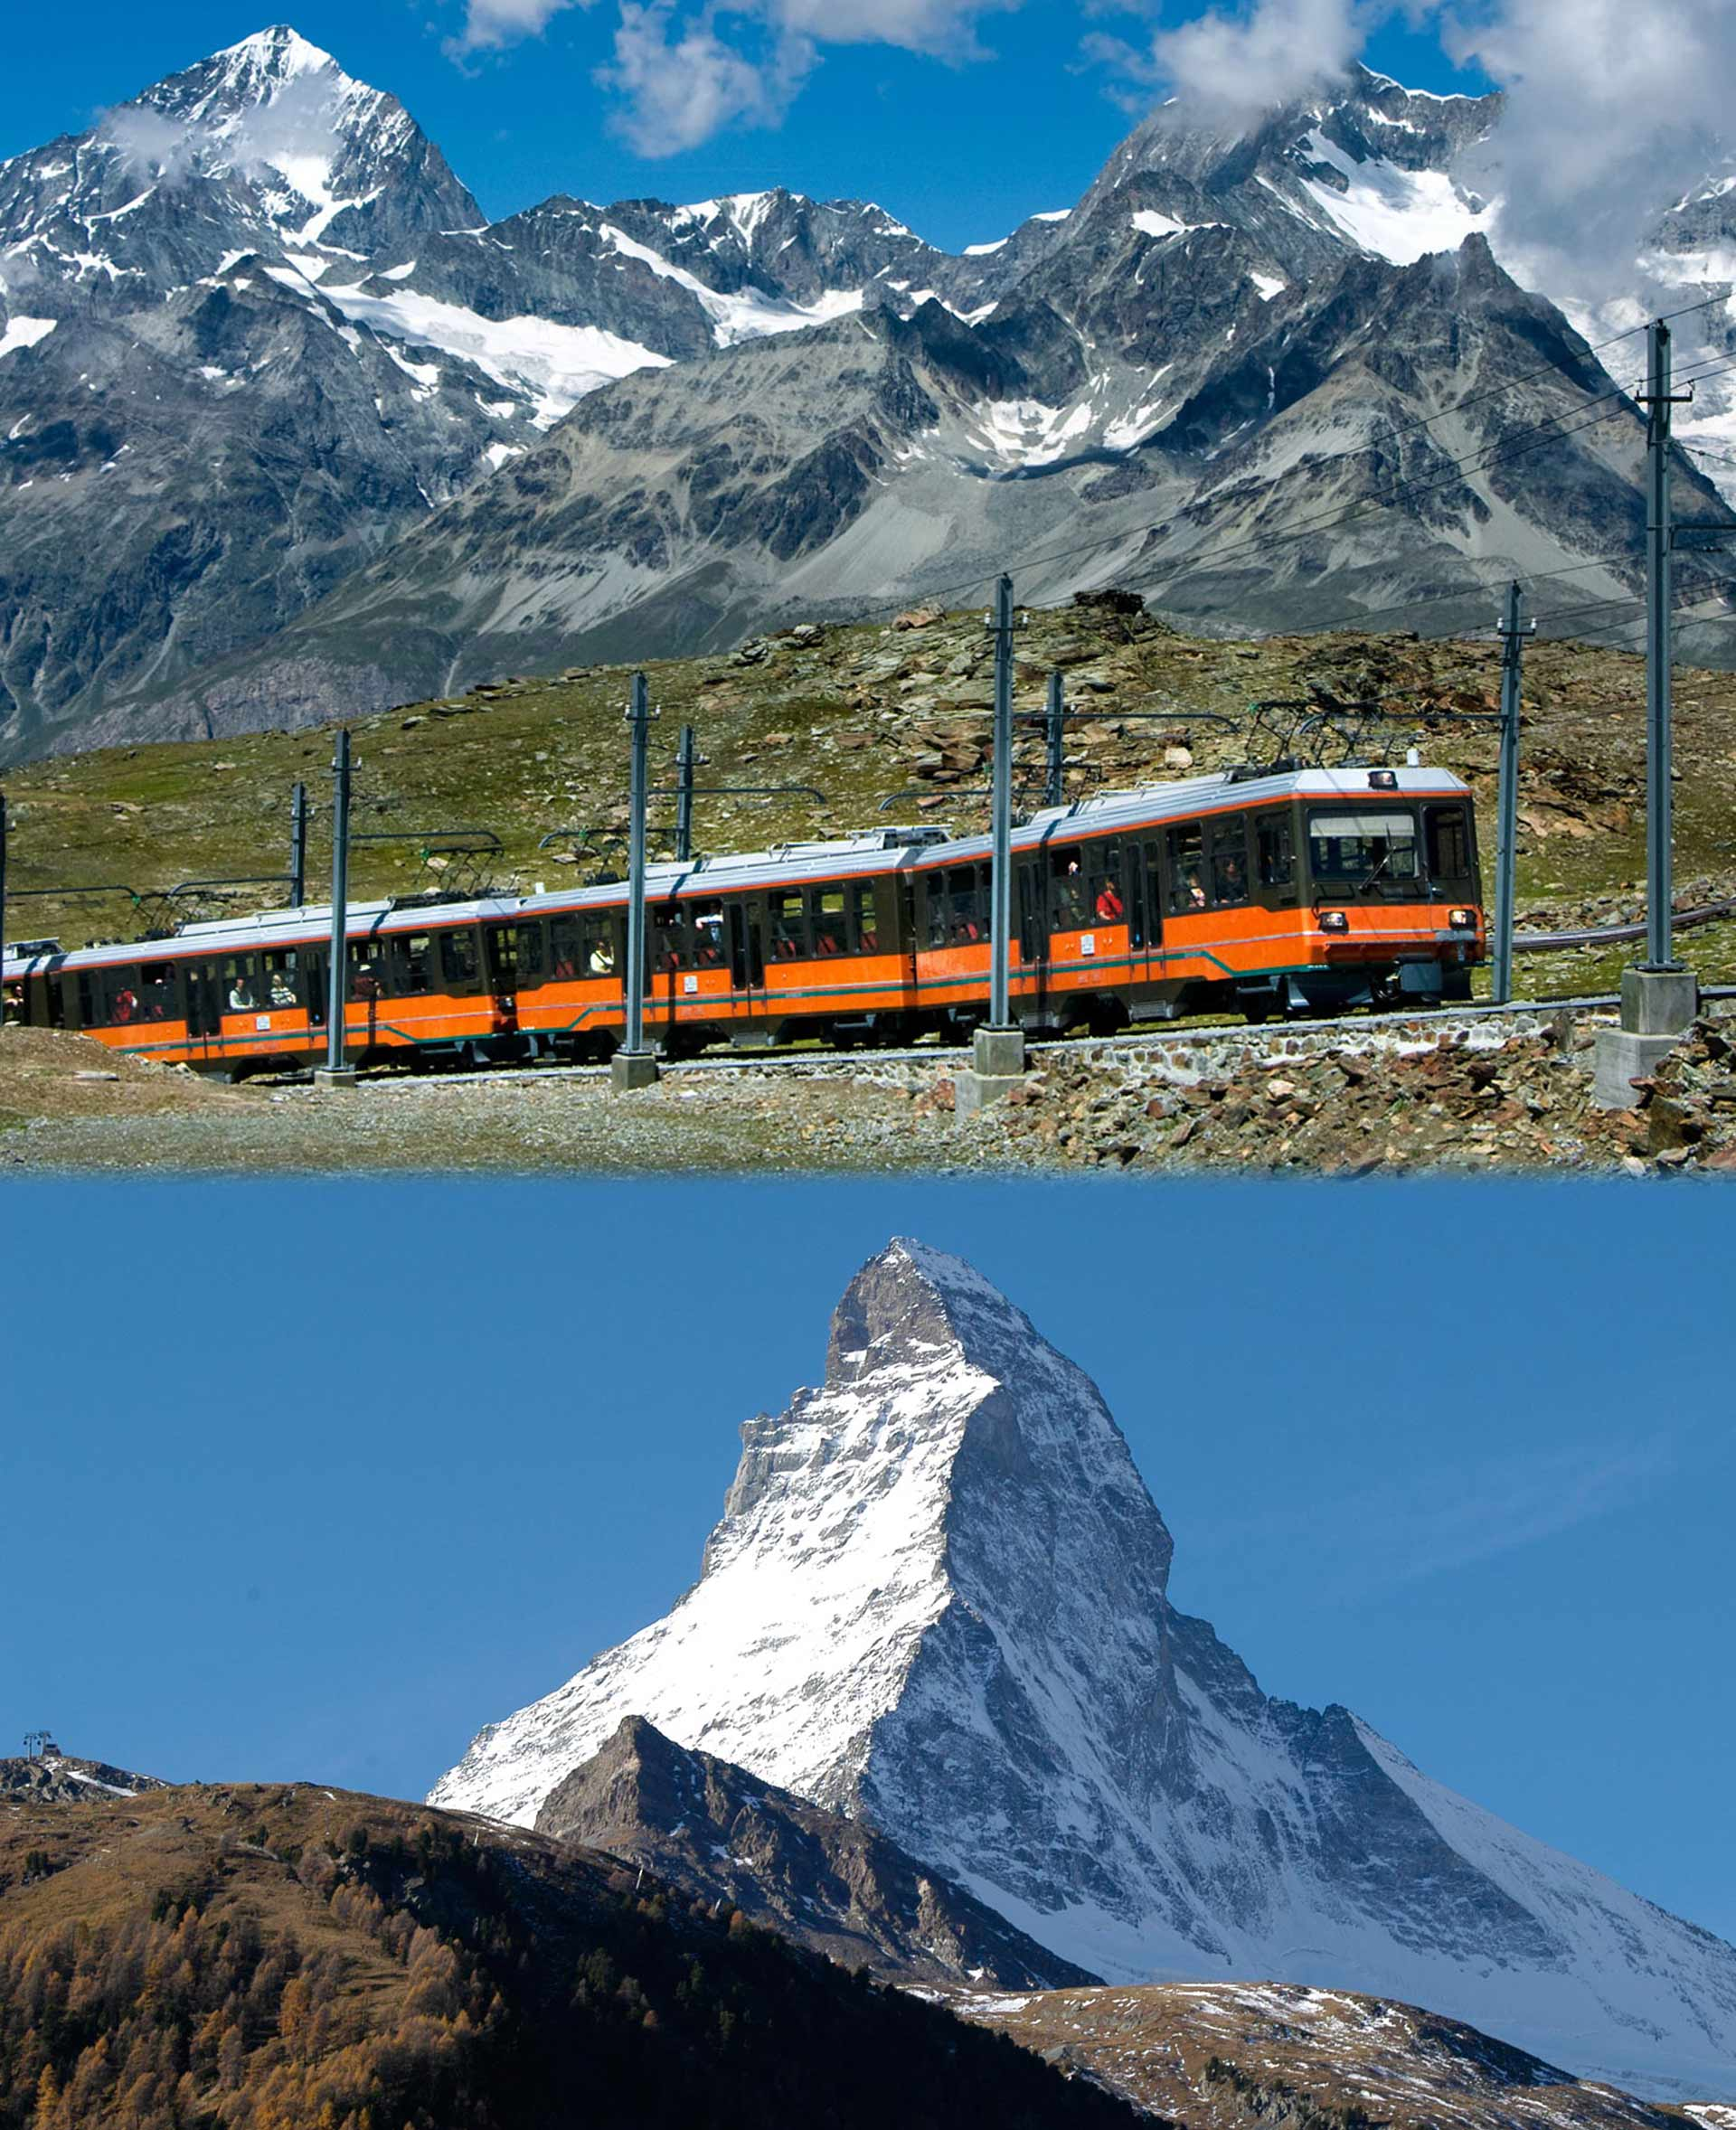 The Gornergrat train goes from the village centre in Zermatt to Gornergrat (3,089 m) in 33 minutes. From this vantage point, one of the most beautiful mountain panoramas in the world opens up – with a view of the Matterhorn (4,478 m).